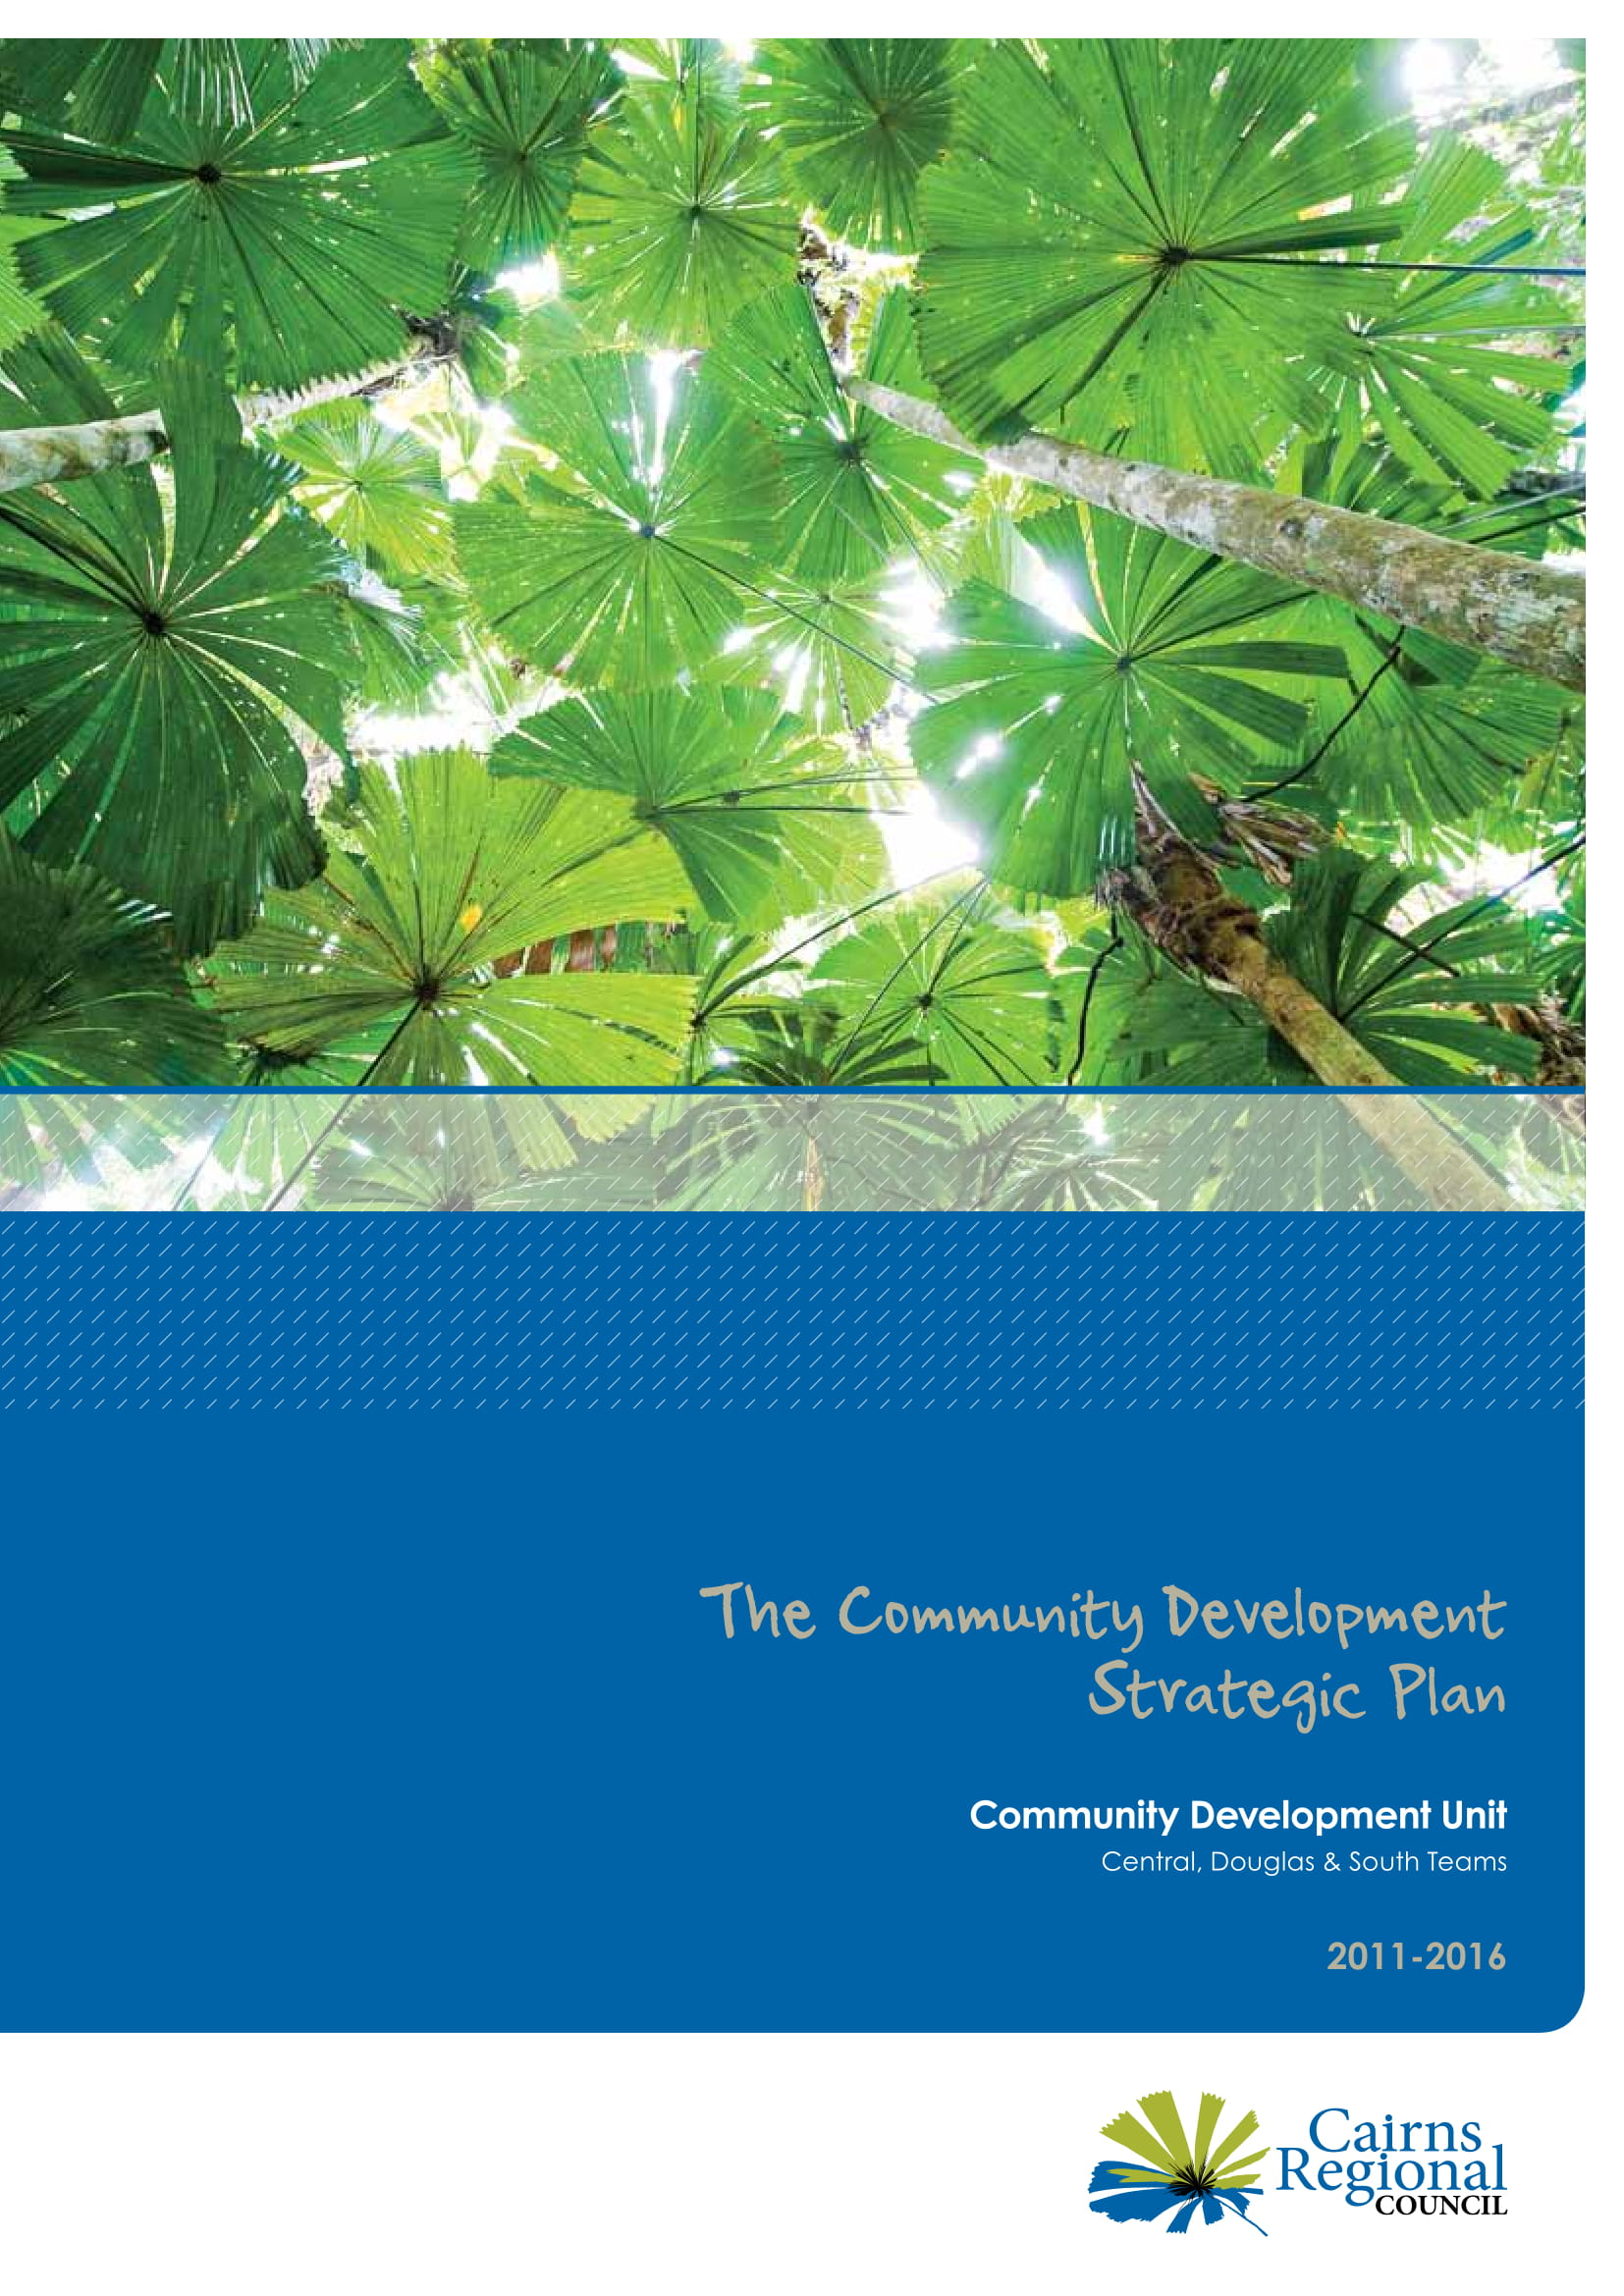 community development strategic plan example 01